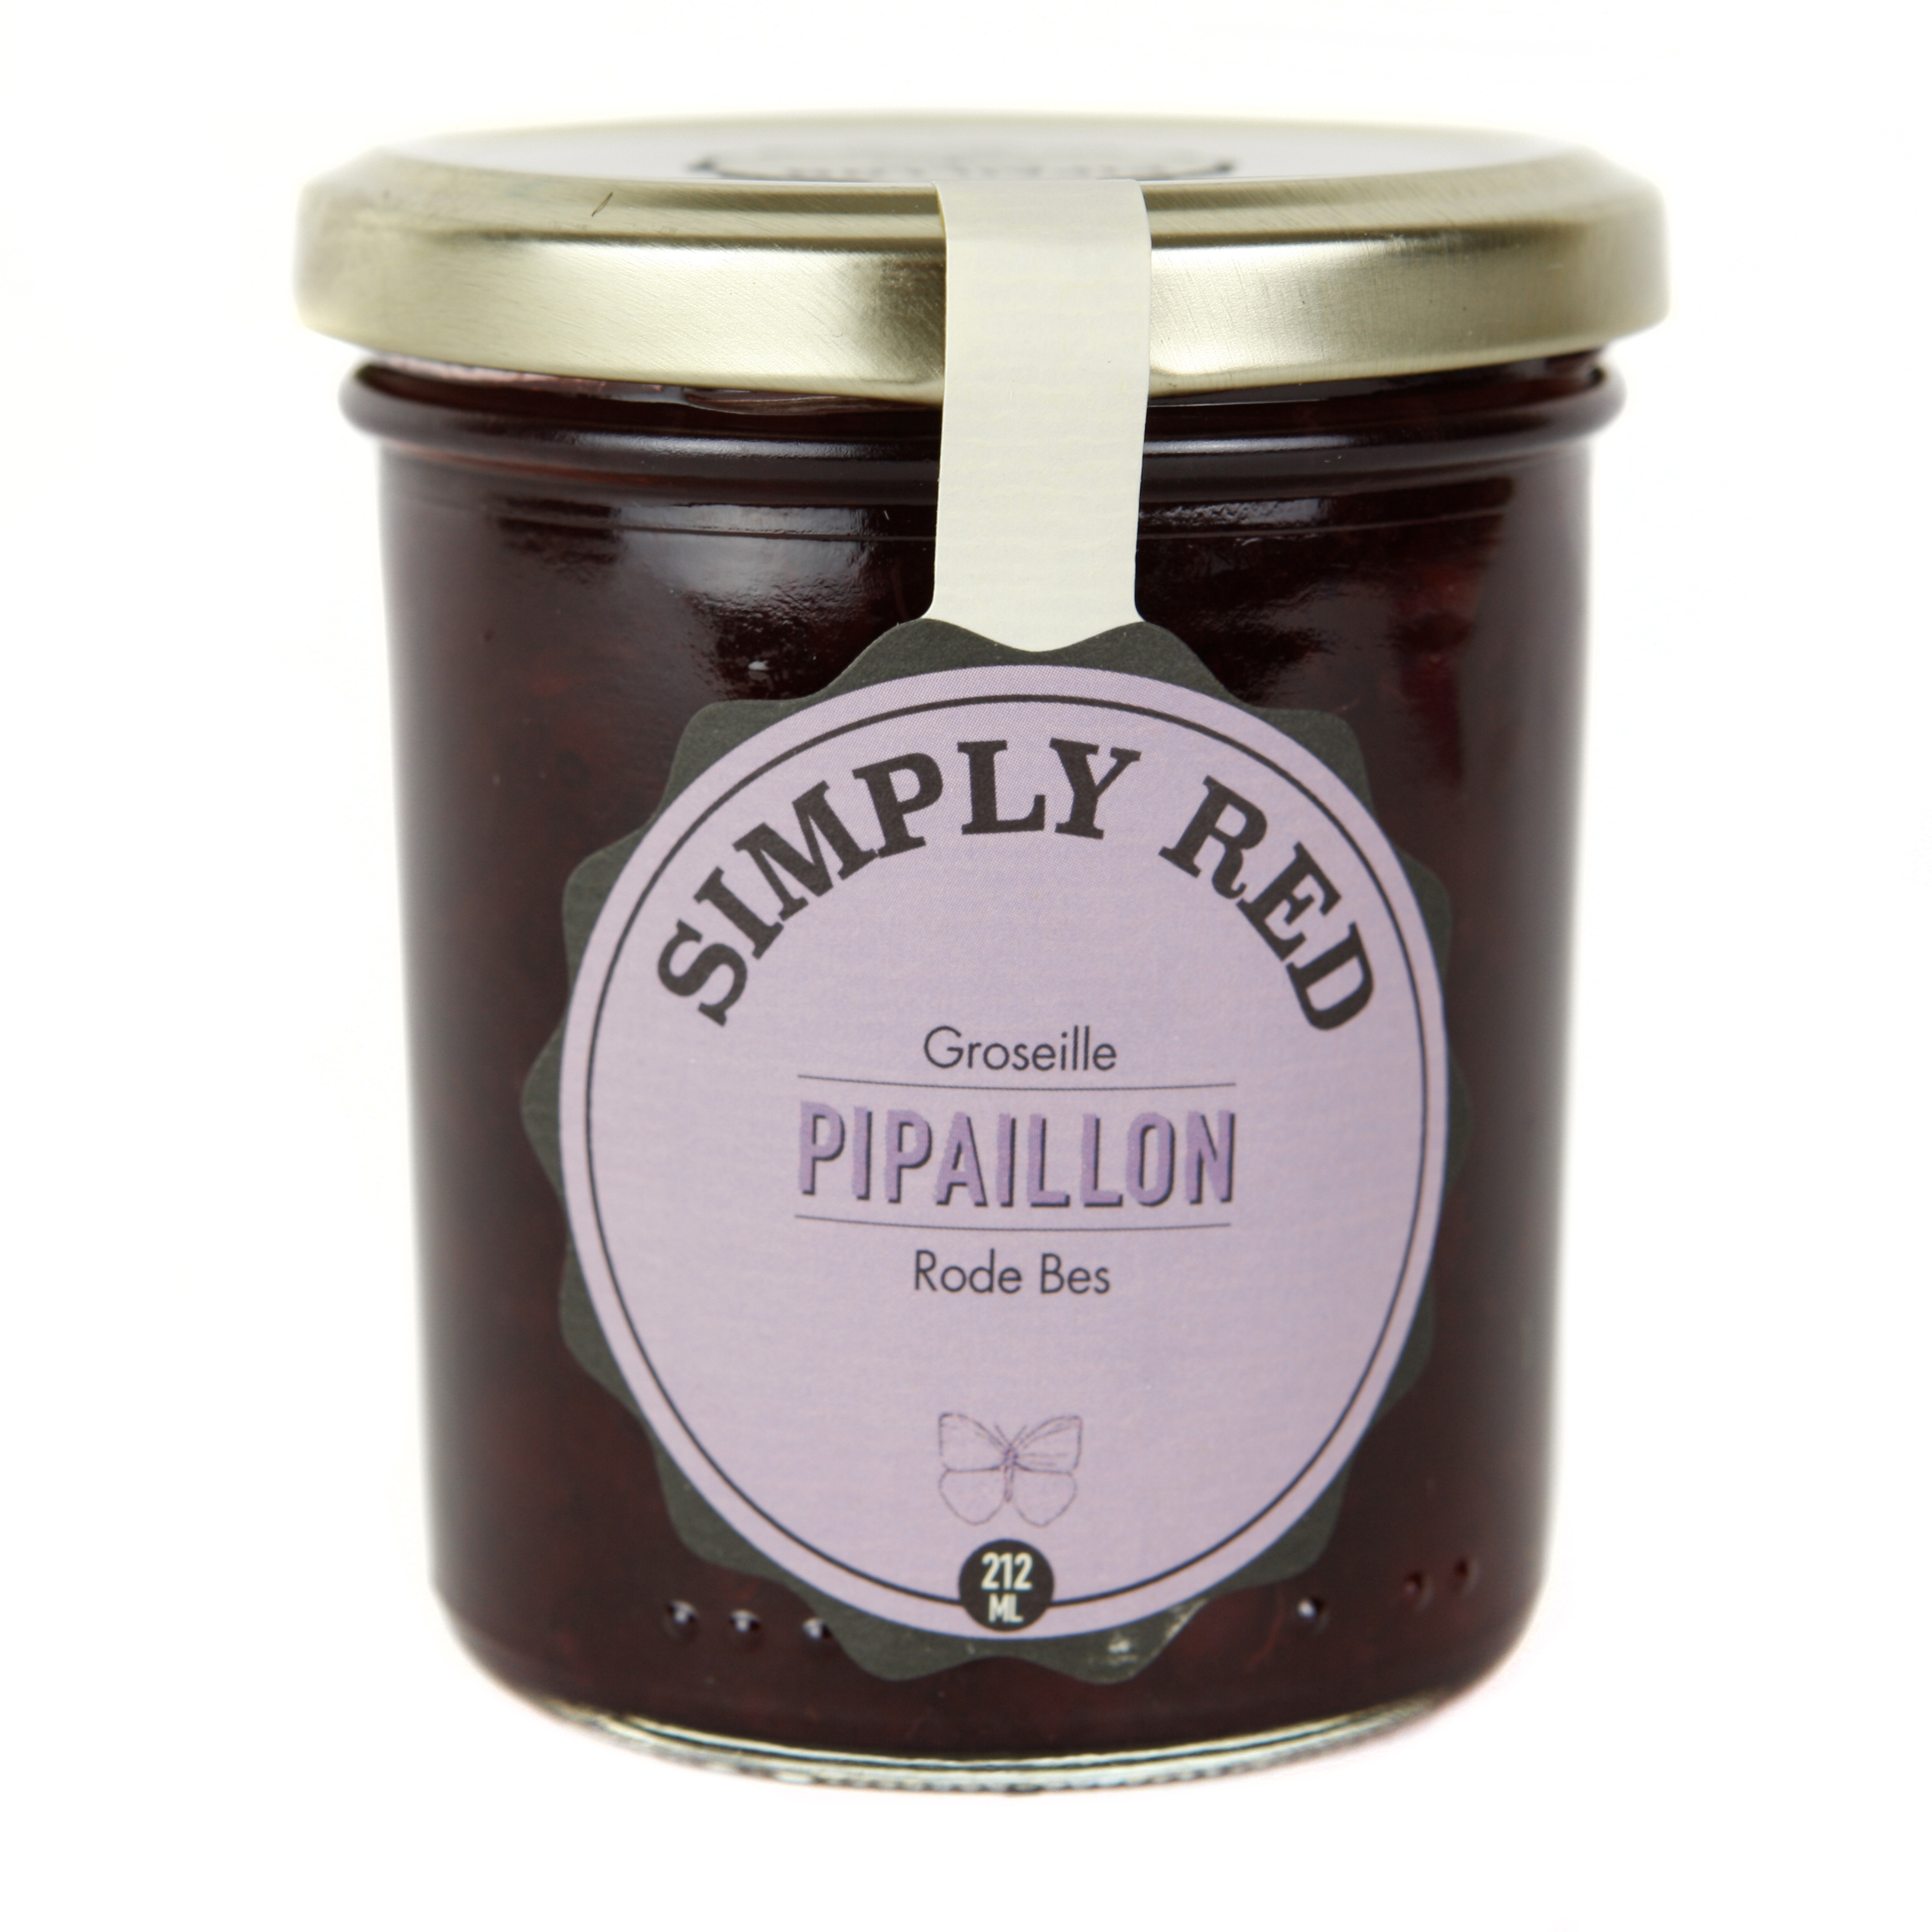 Confiture Simply Red - Groseille BIO, Pipaillon (212 ml)